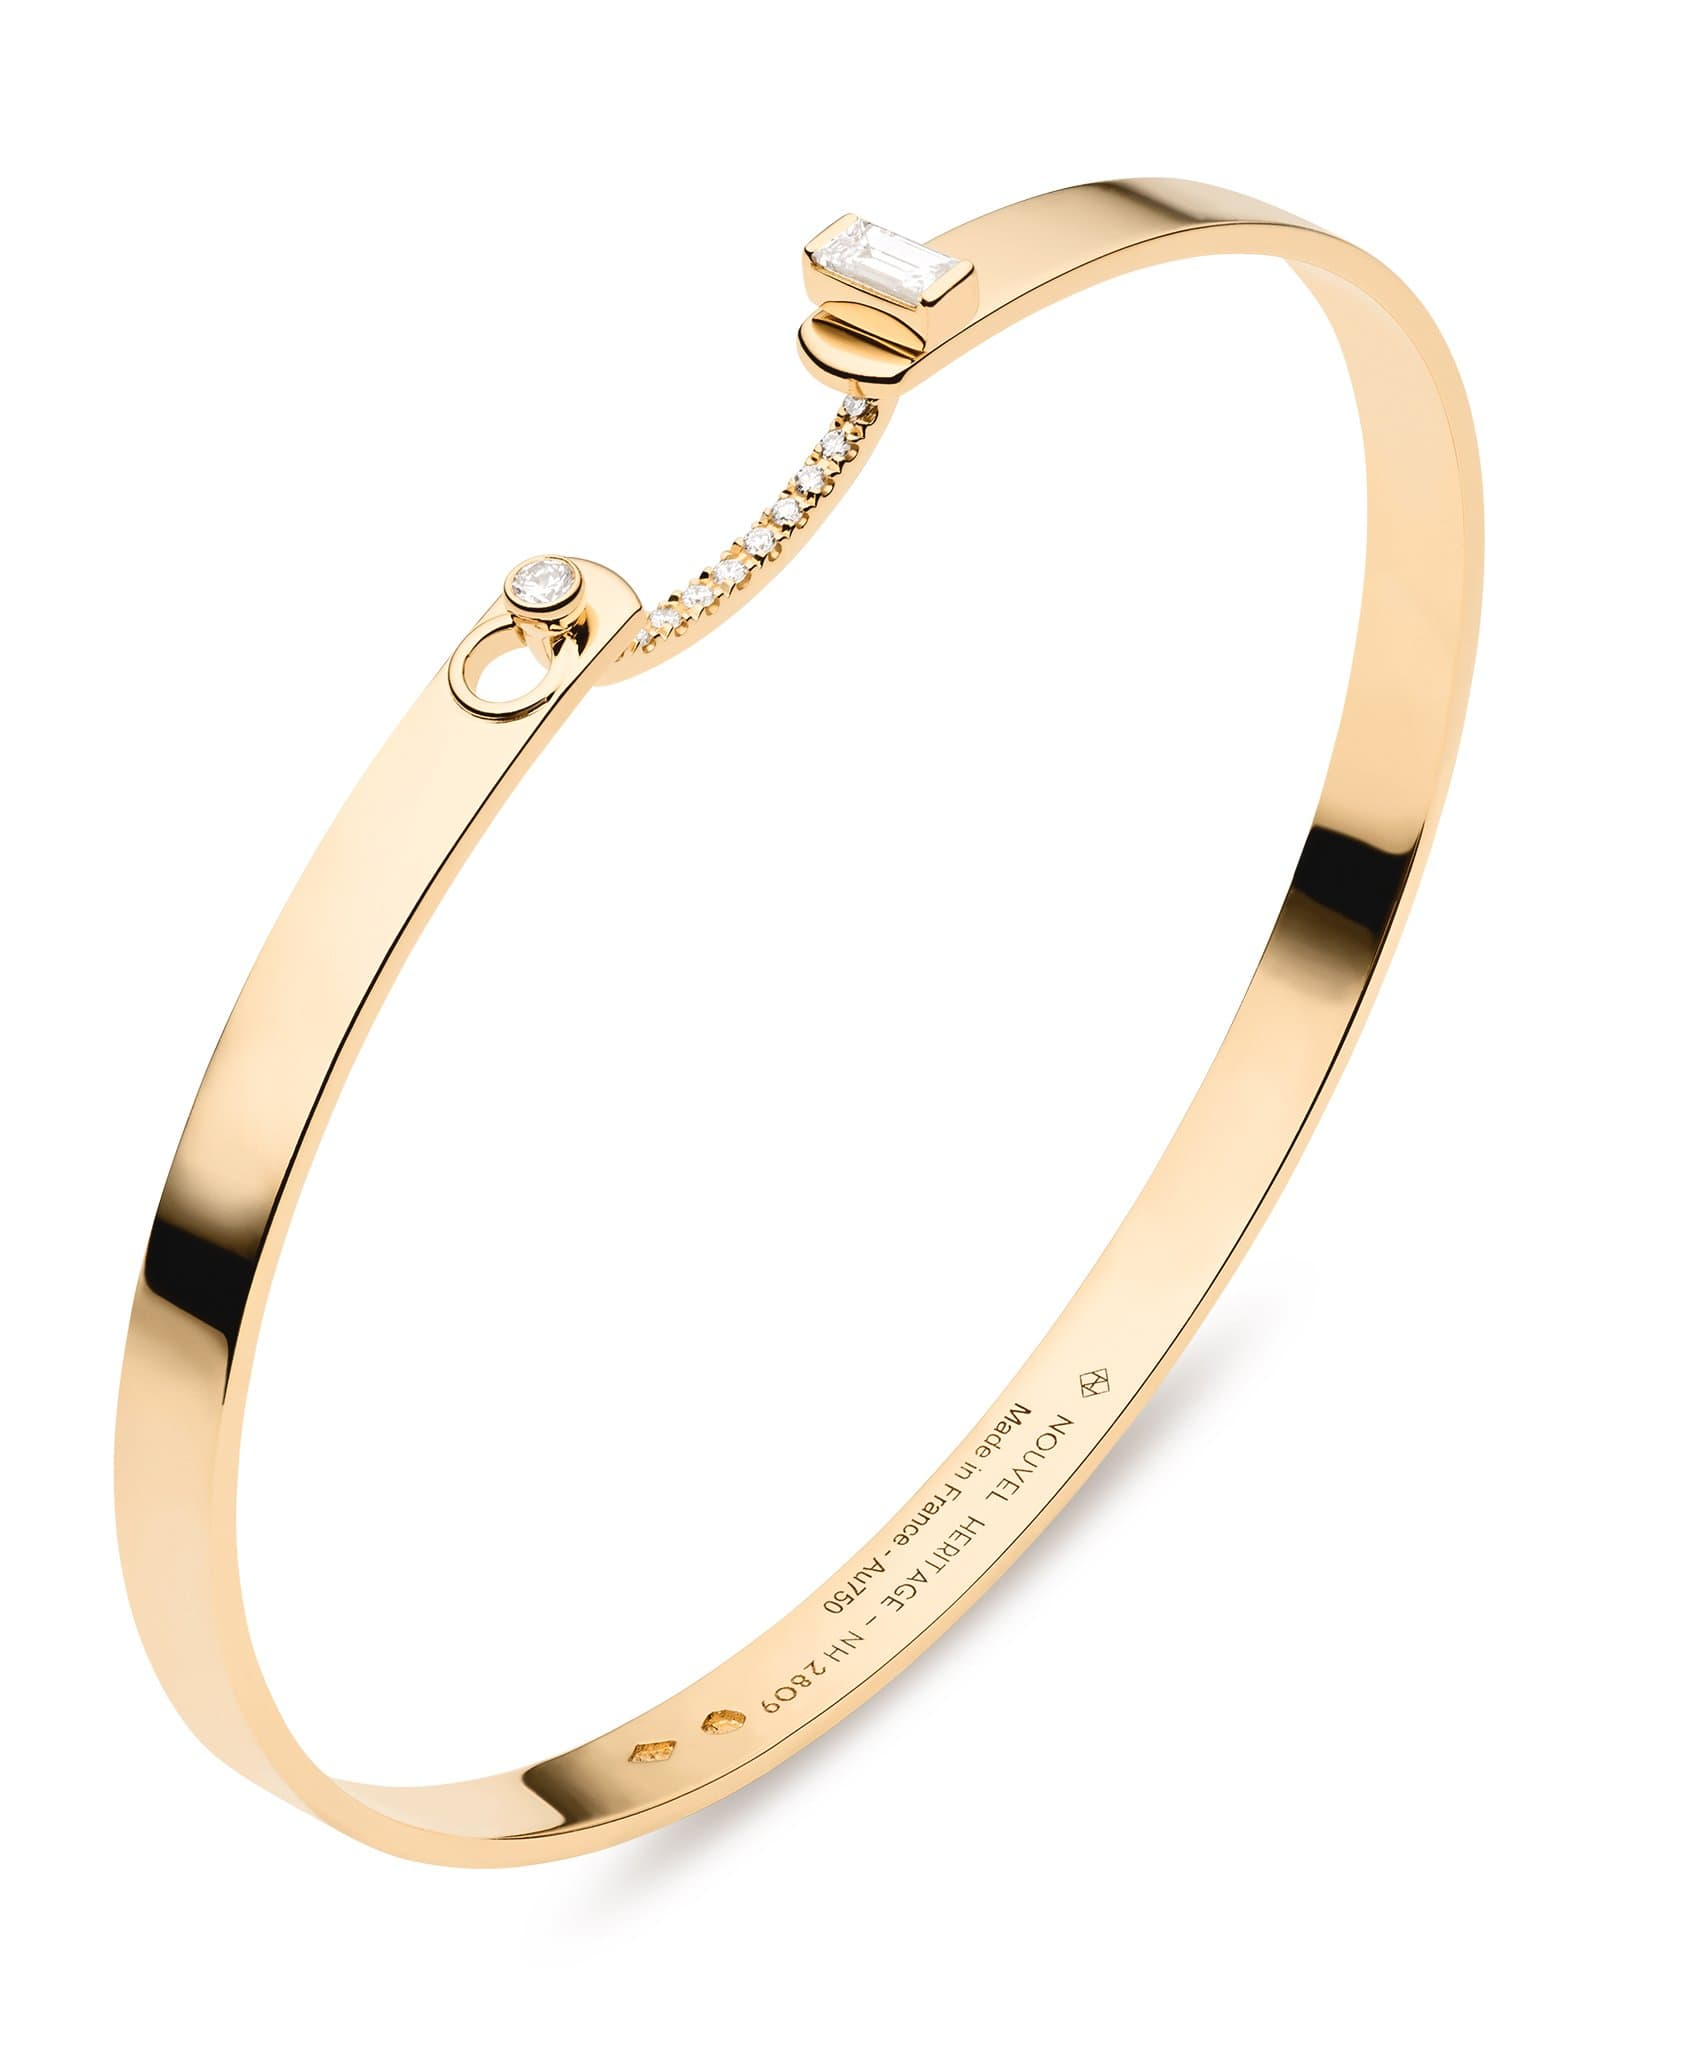 Dinner Date Mood Bangle: Discover Luxury Fine Jewelry | Nouvel Heritage || Yellow Gold